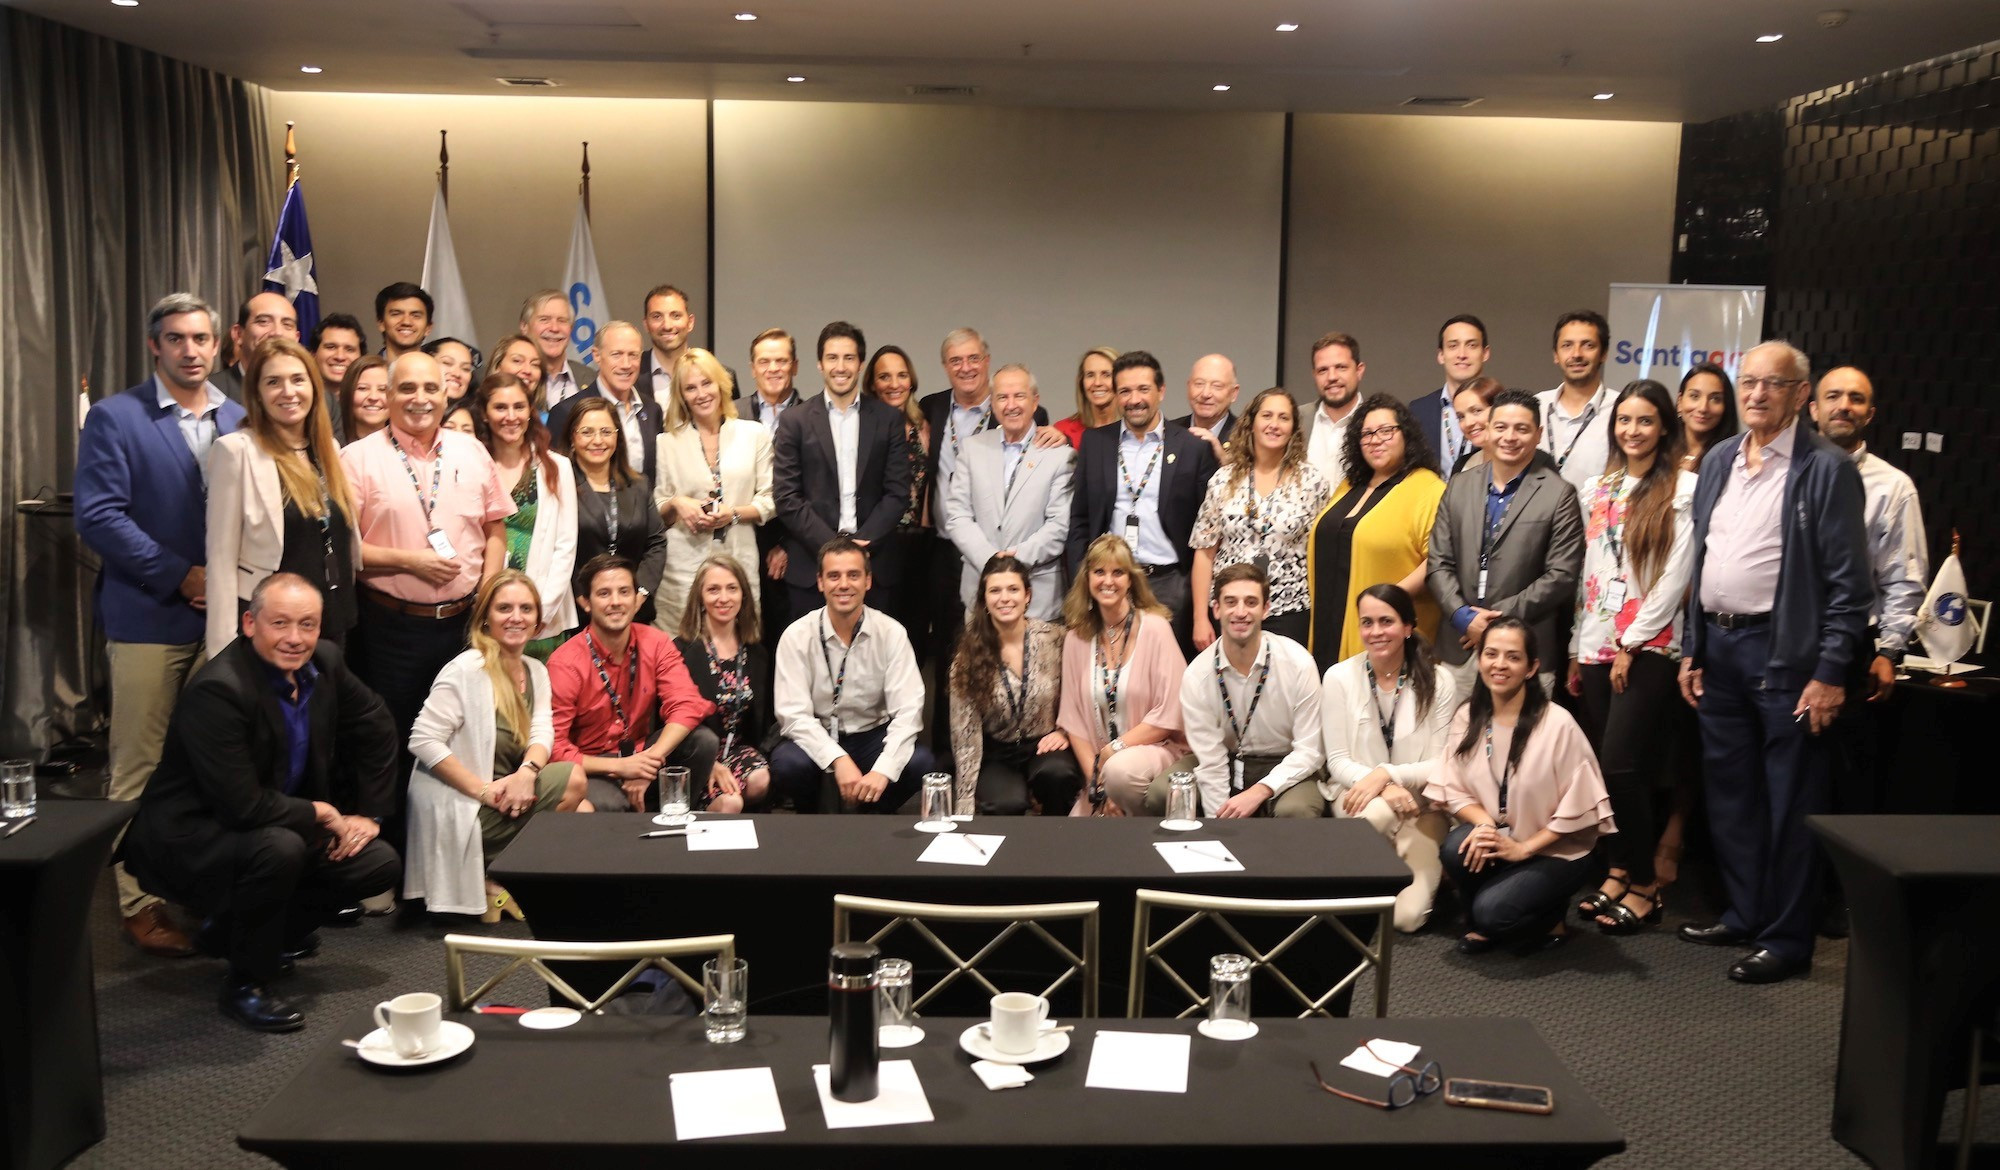 Lima 2019 delegates share experience with 2023 Pan American Games hosts Santiago